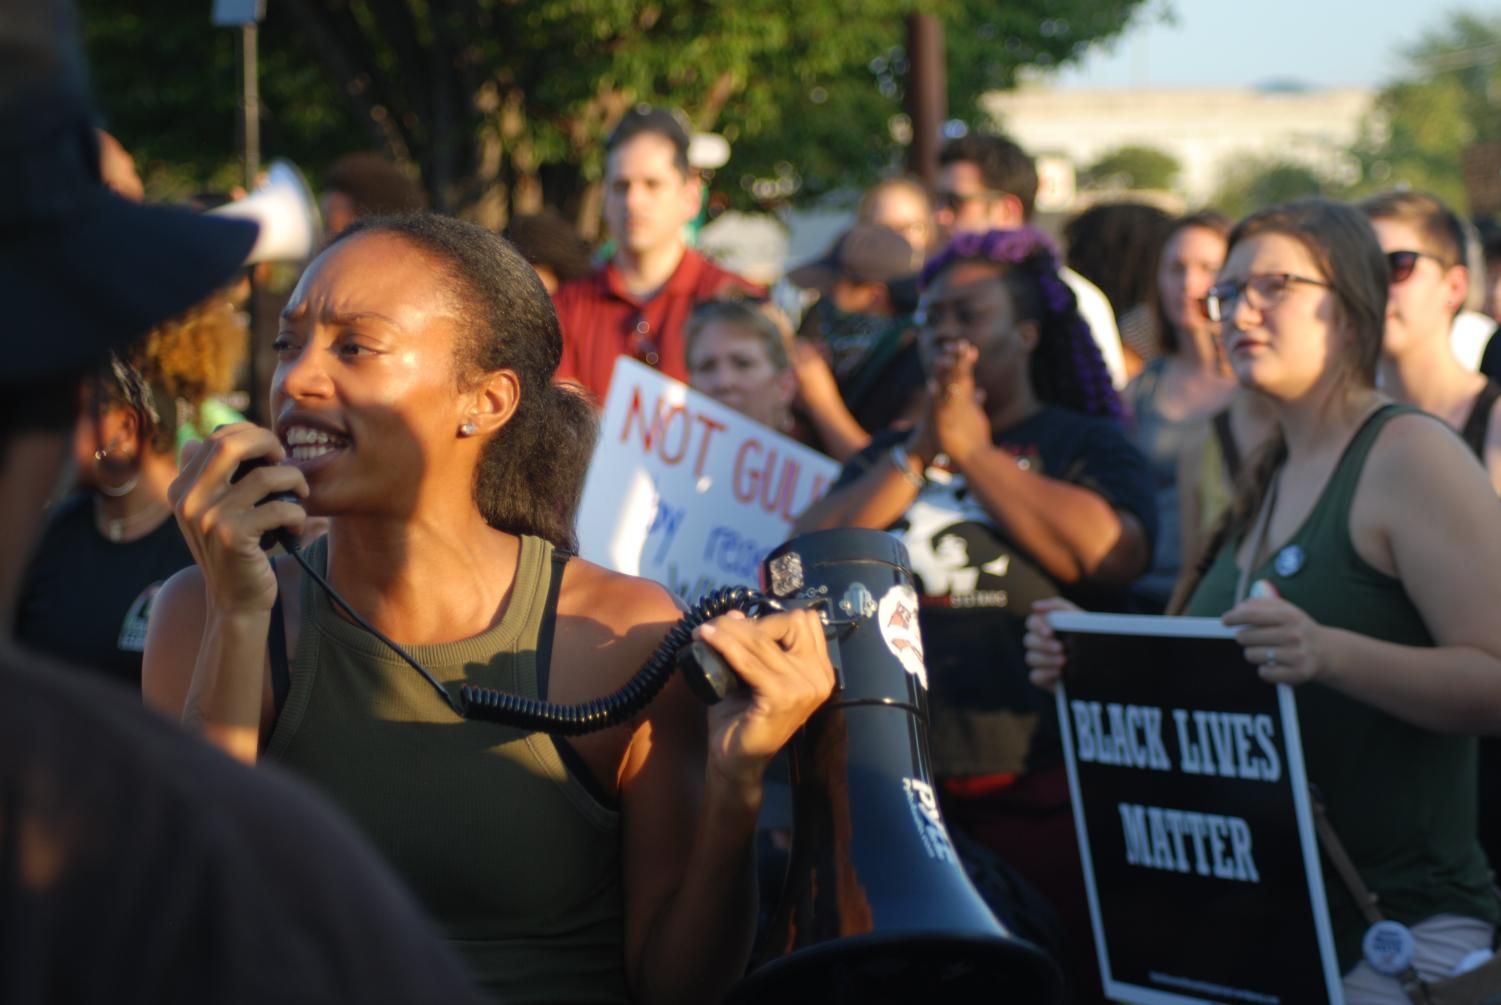 Photo from the Galleria protests.